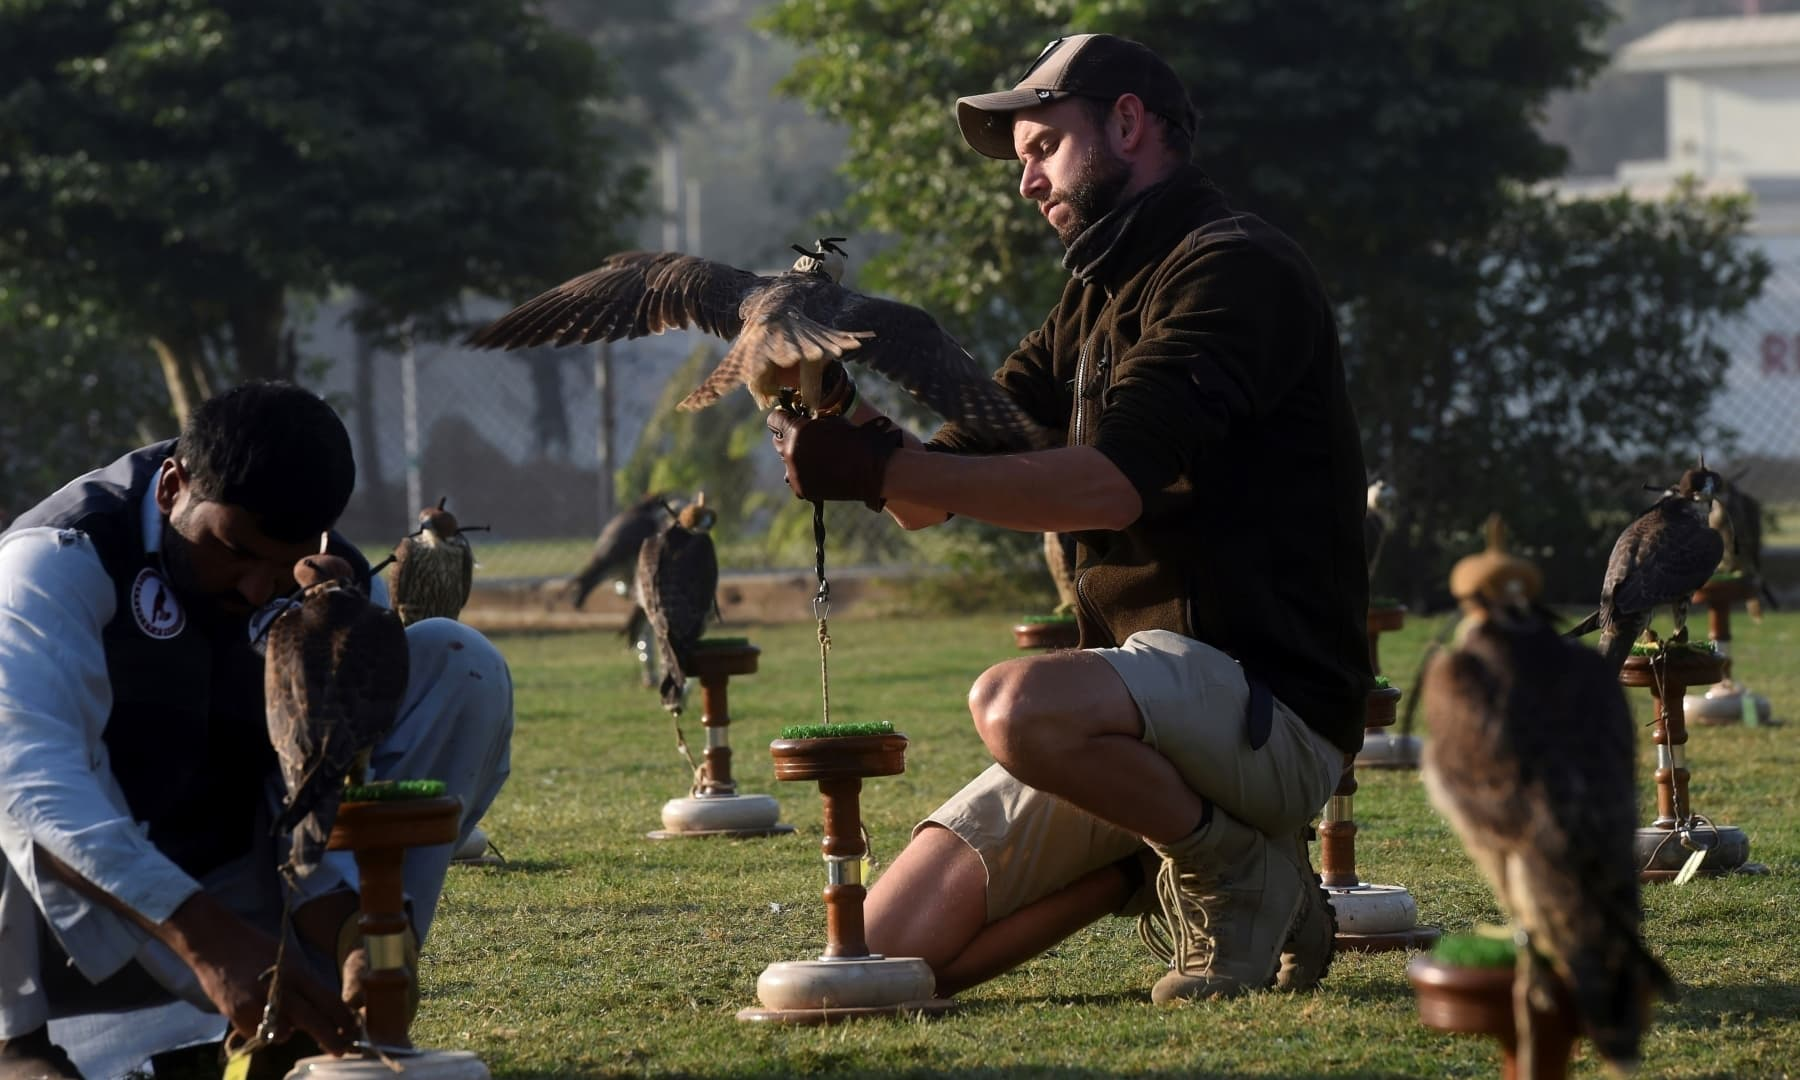 Hielko Van Rijthoven (R), a conservationist working with Wings of Change, examines a falcon seized by authorities from smugglers, in Karachi, Nov 23, 2020. — AFP